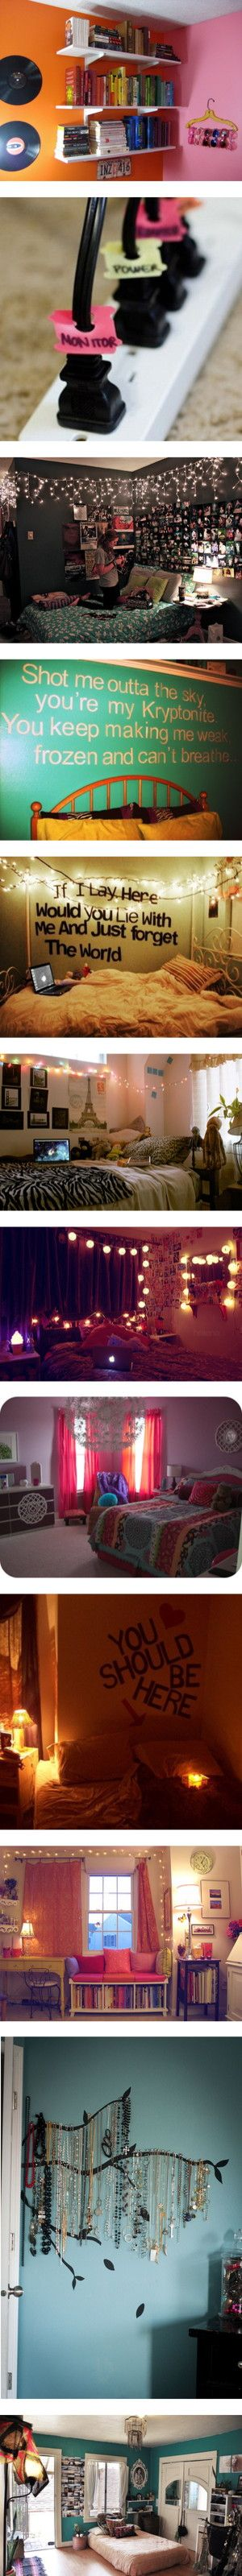 """room ideassssss"" by memzo10 ❤ liked on Polyvore"